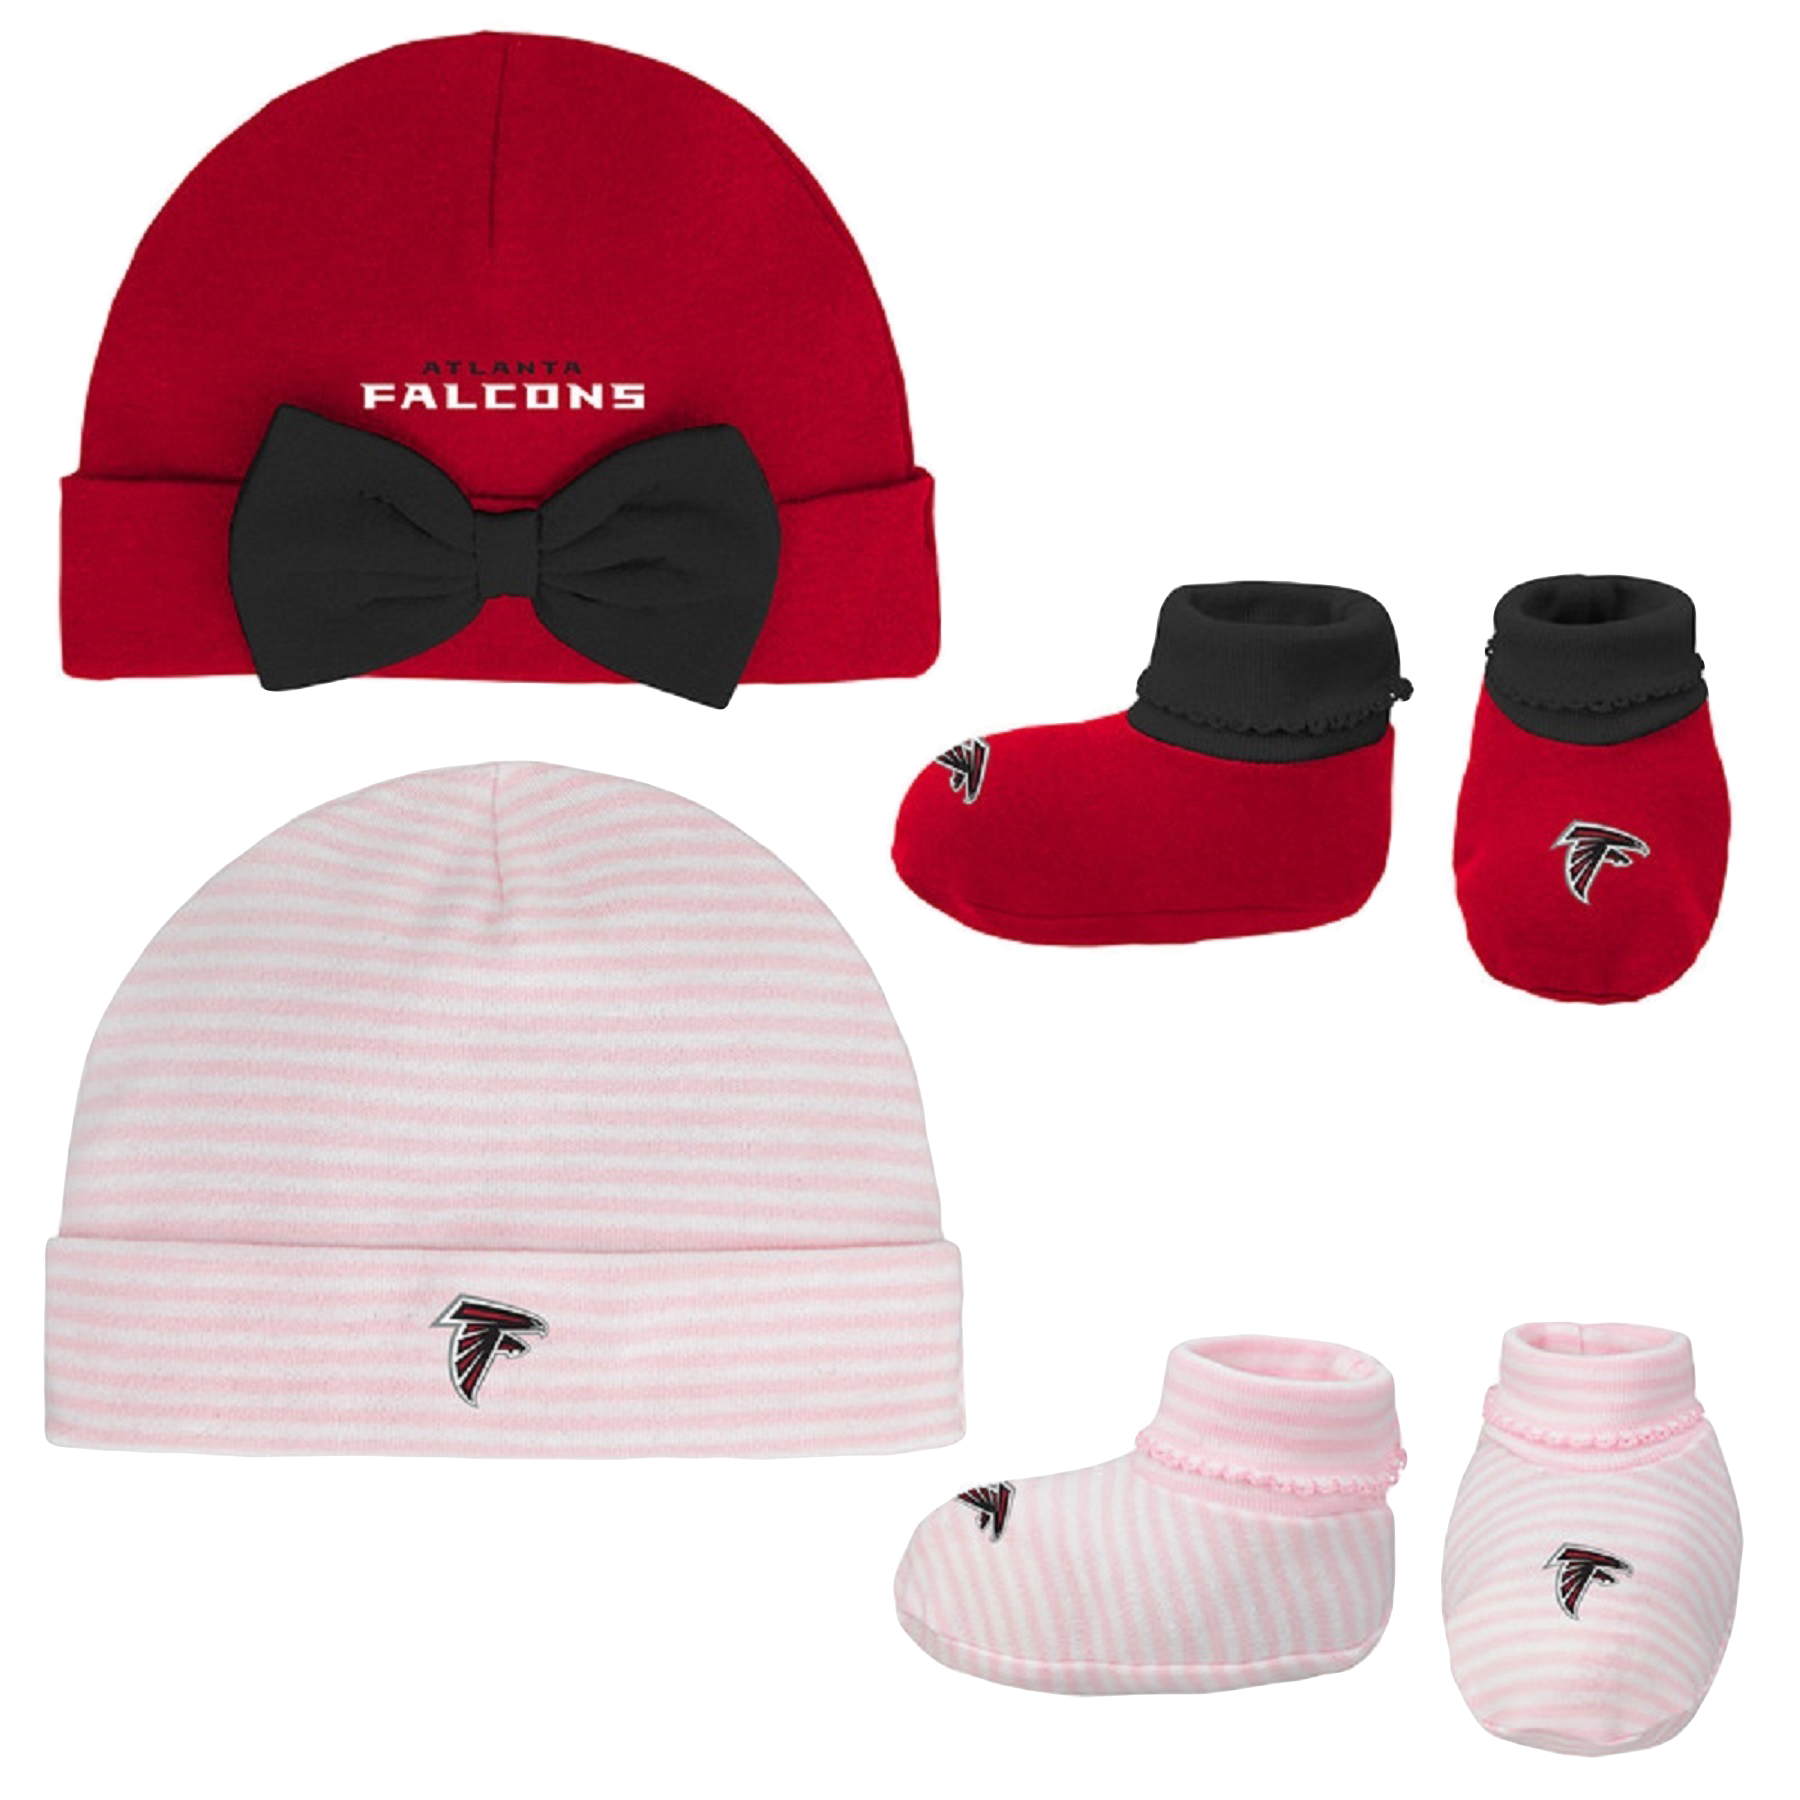 Girls Newborn & Infant Red/Pink Atlanta Falcons Cuffed Knit Hat & Booties Set - Newborn